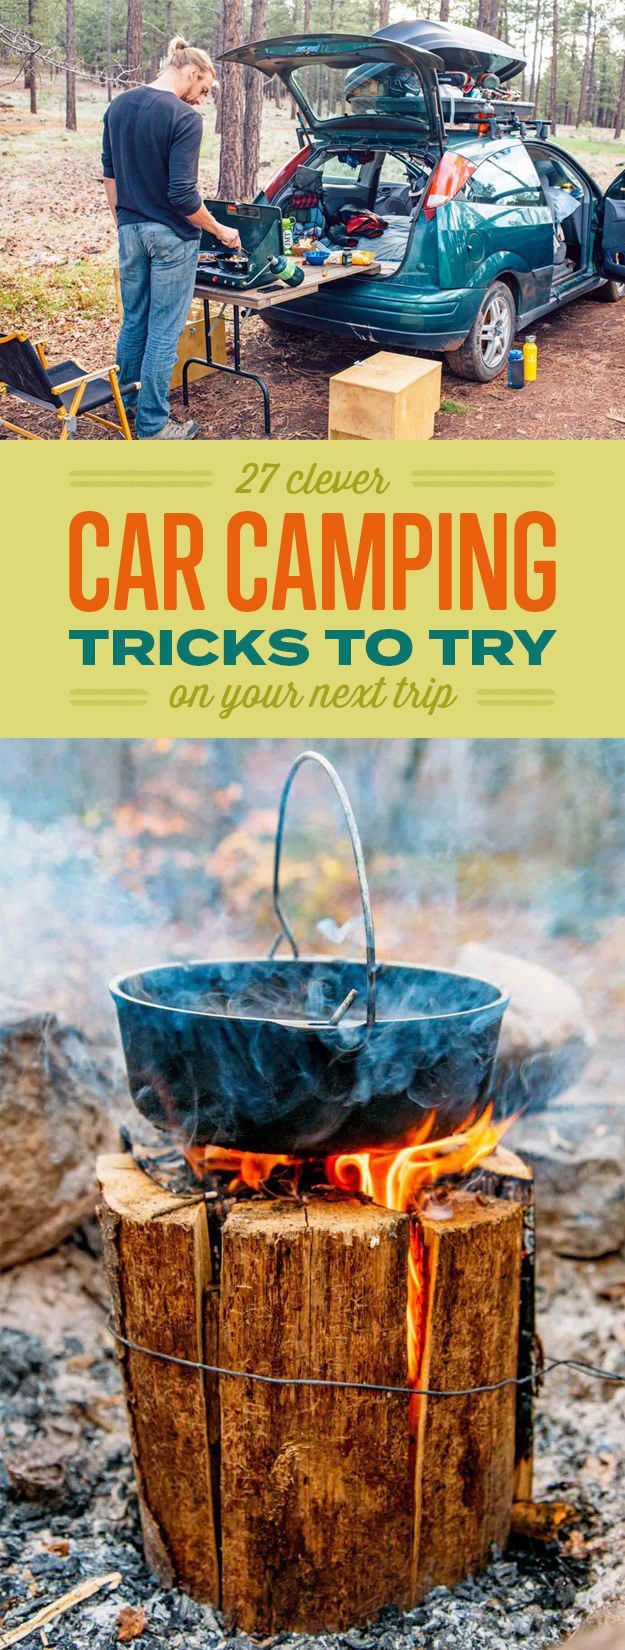 Get hipster with your coffee, and boil water for pour-over or Chemex on a small propane stove. #campingideas